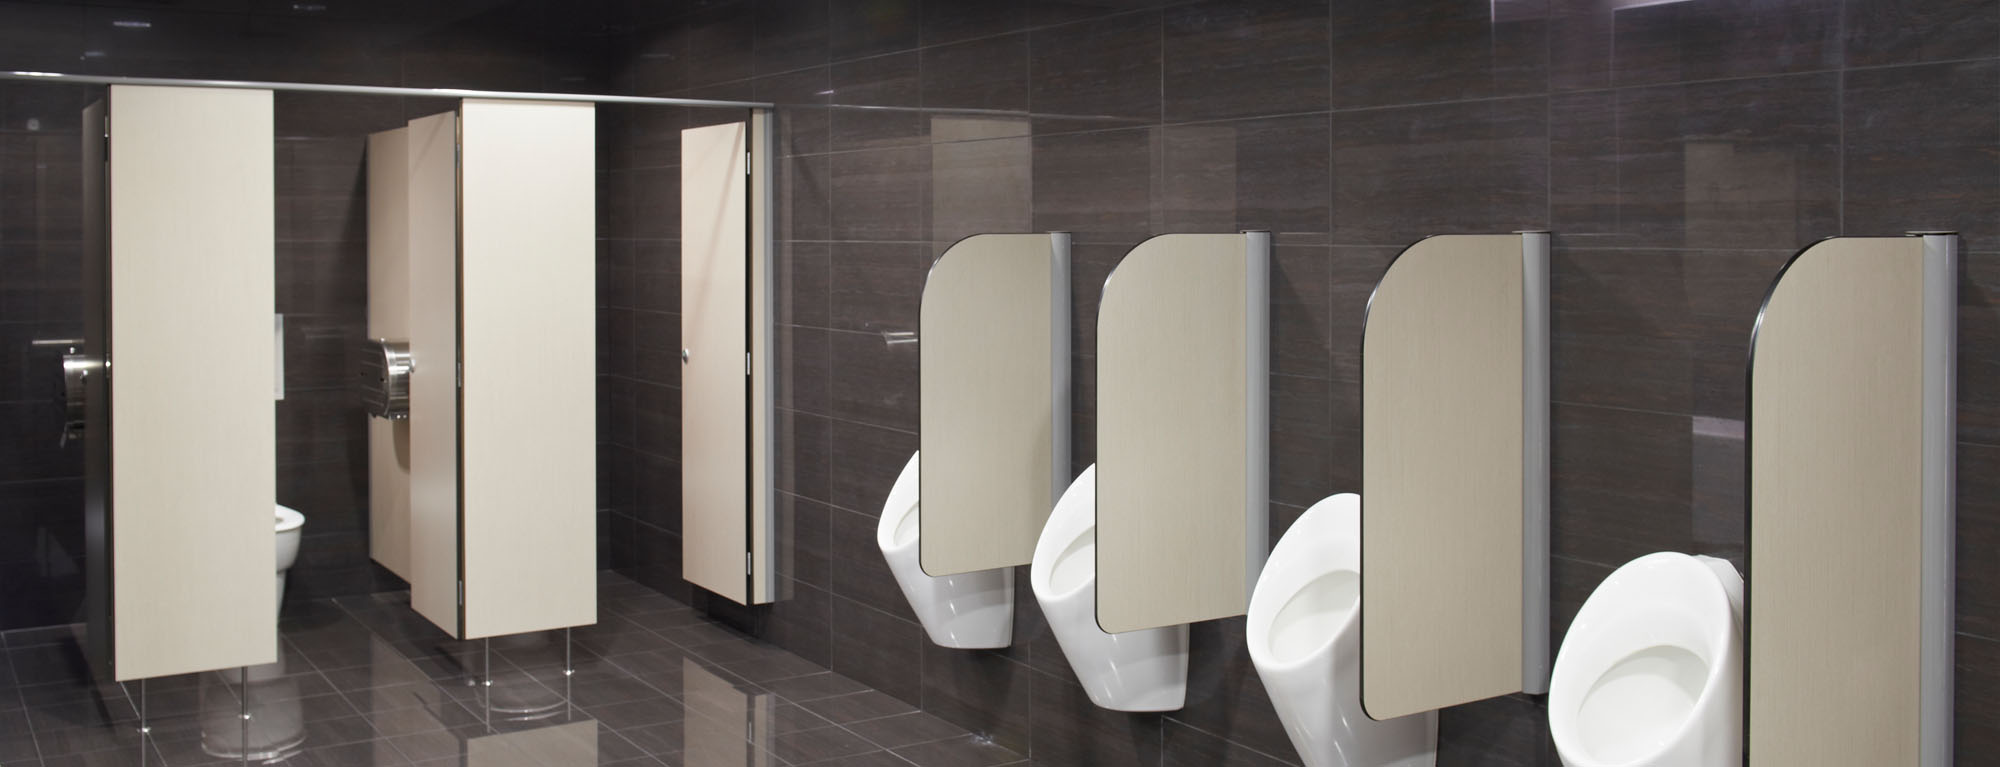 Bathroom Urinal Partitions ablution solutions & toilet partitions - resco new zealand